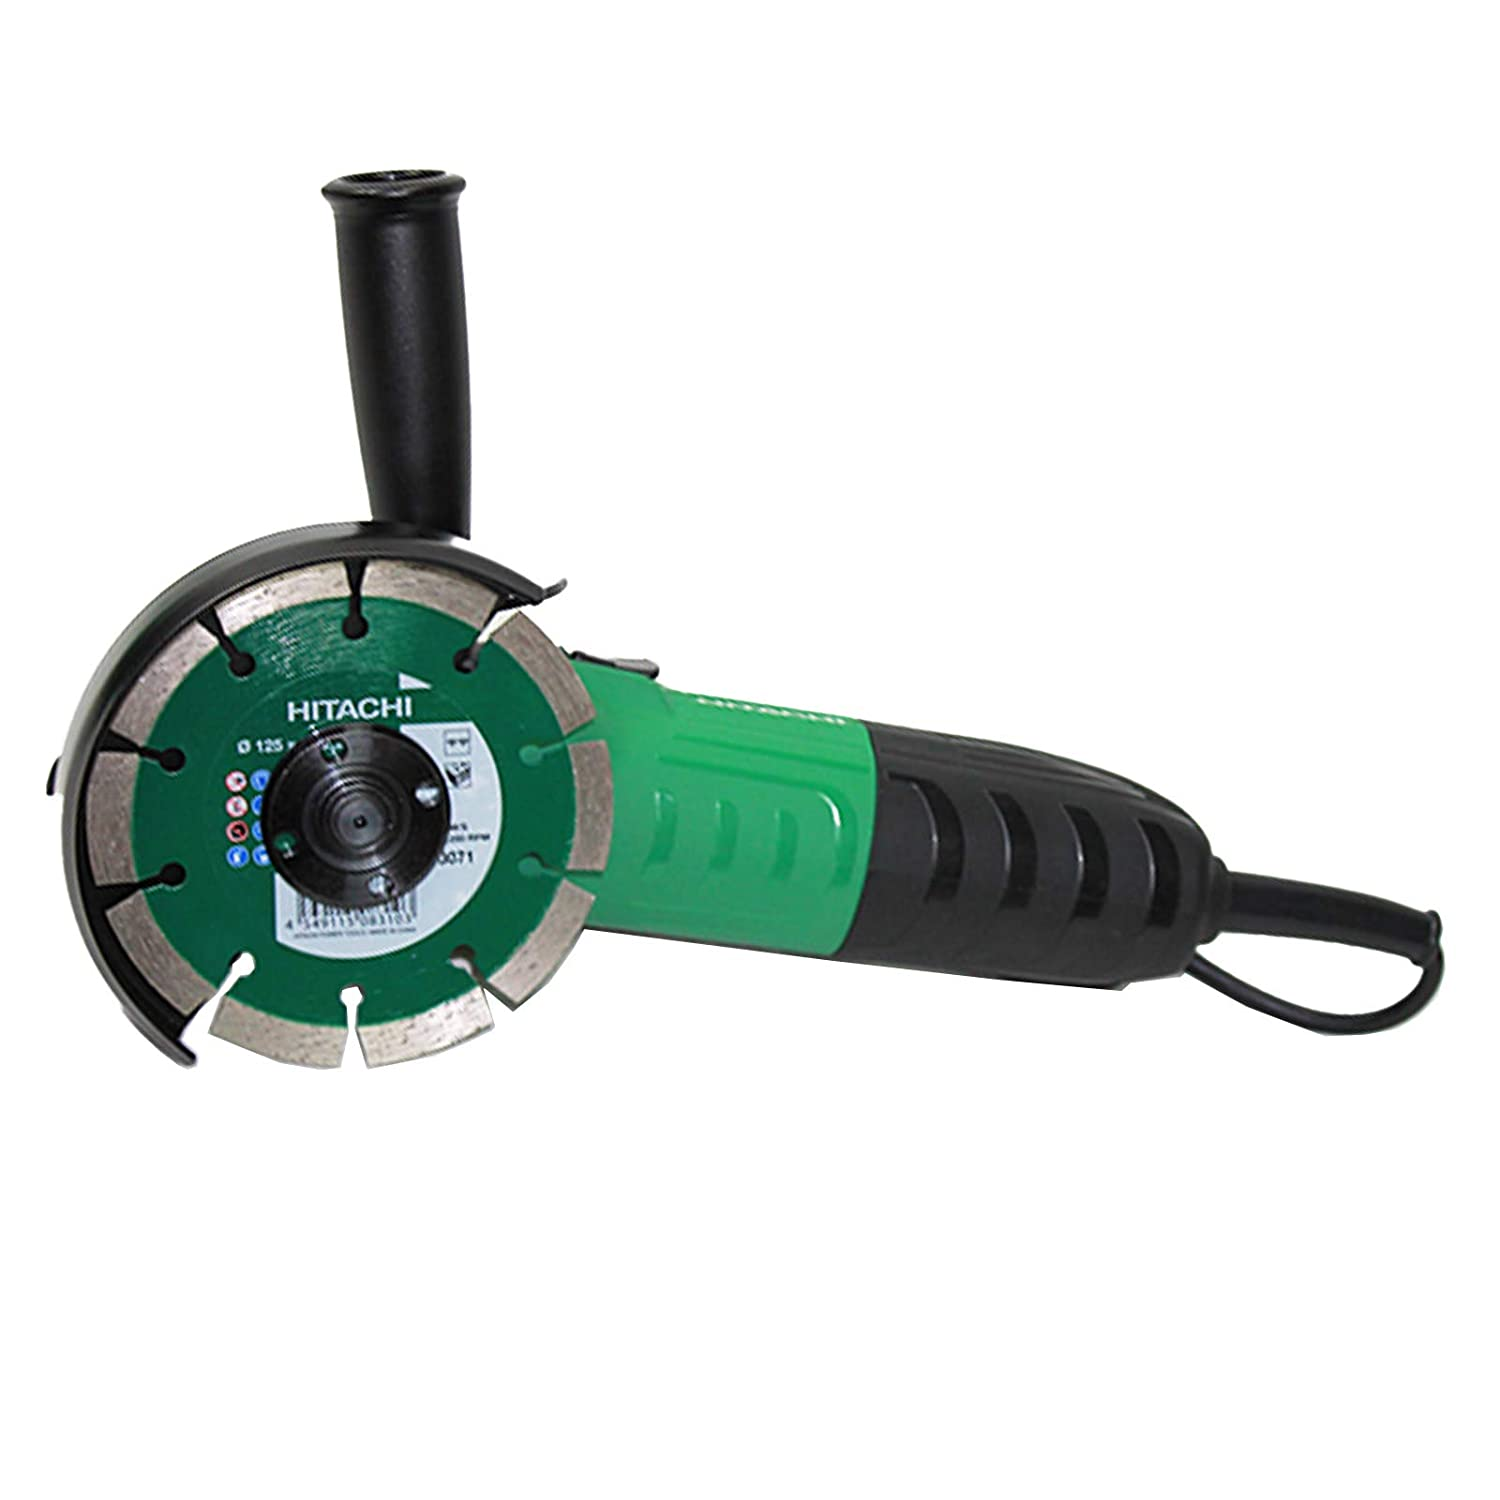 Hitachi G13STAYL 12000 RPM, Negro, Verde, M14, 88 dB, 7,9 m//s/², Corriente alterna Amoladora angular